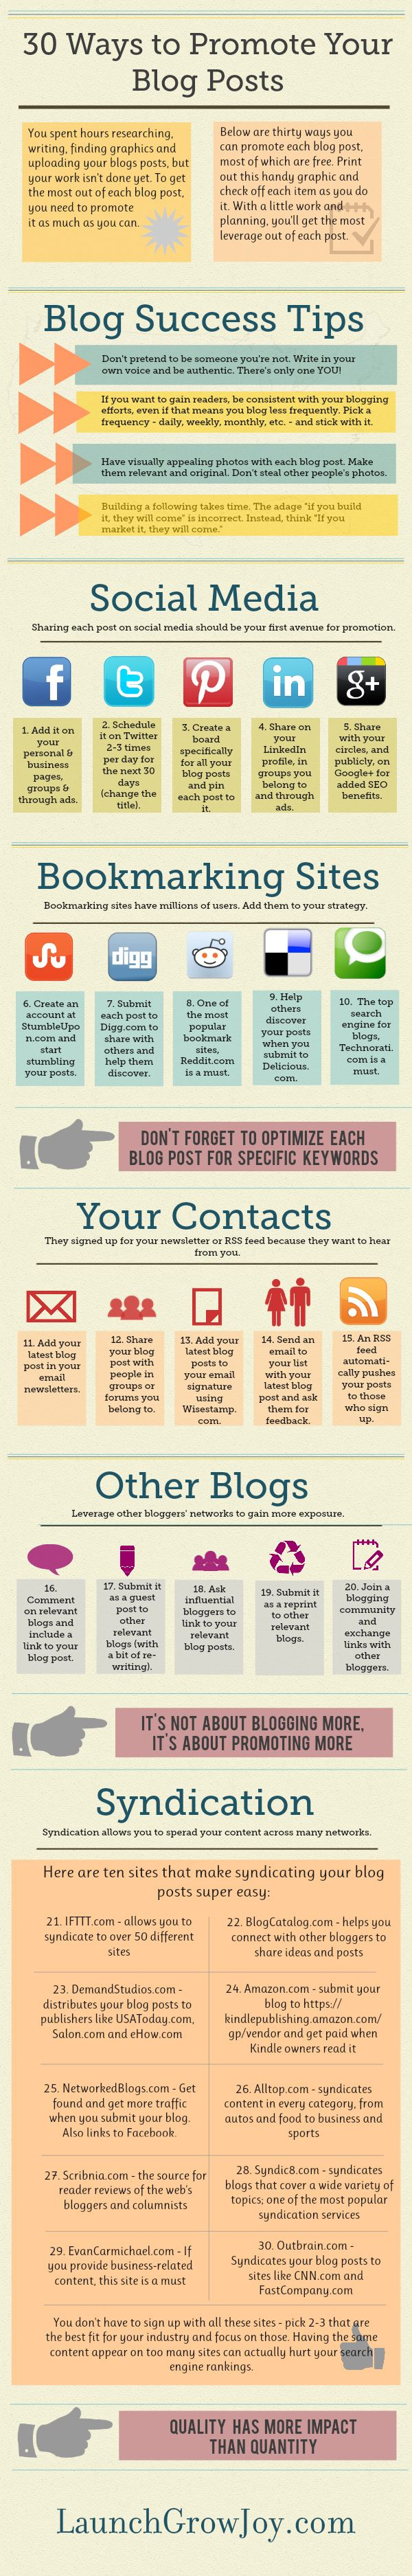 30 ways to promote your blog posts and articles [infographic]: Blog Posts, Social Media, Socialmedia, Infographics